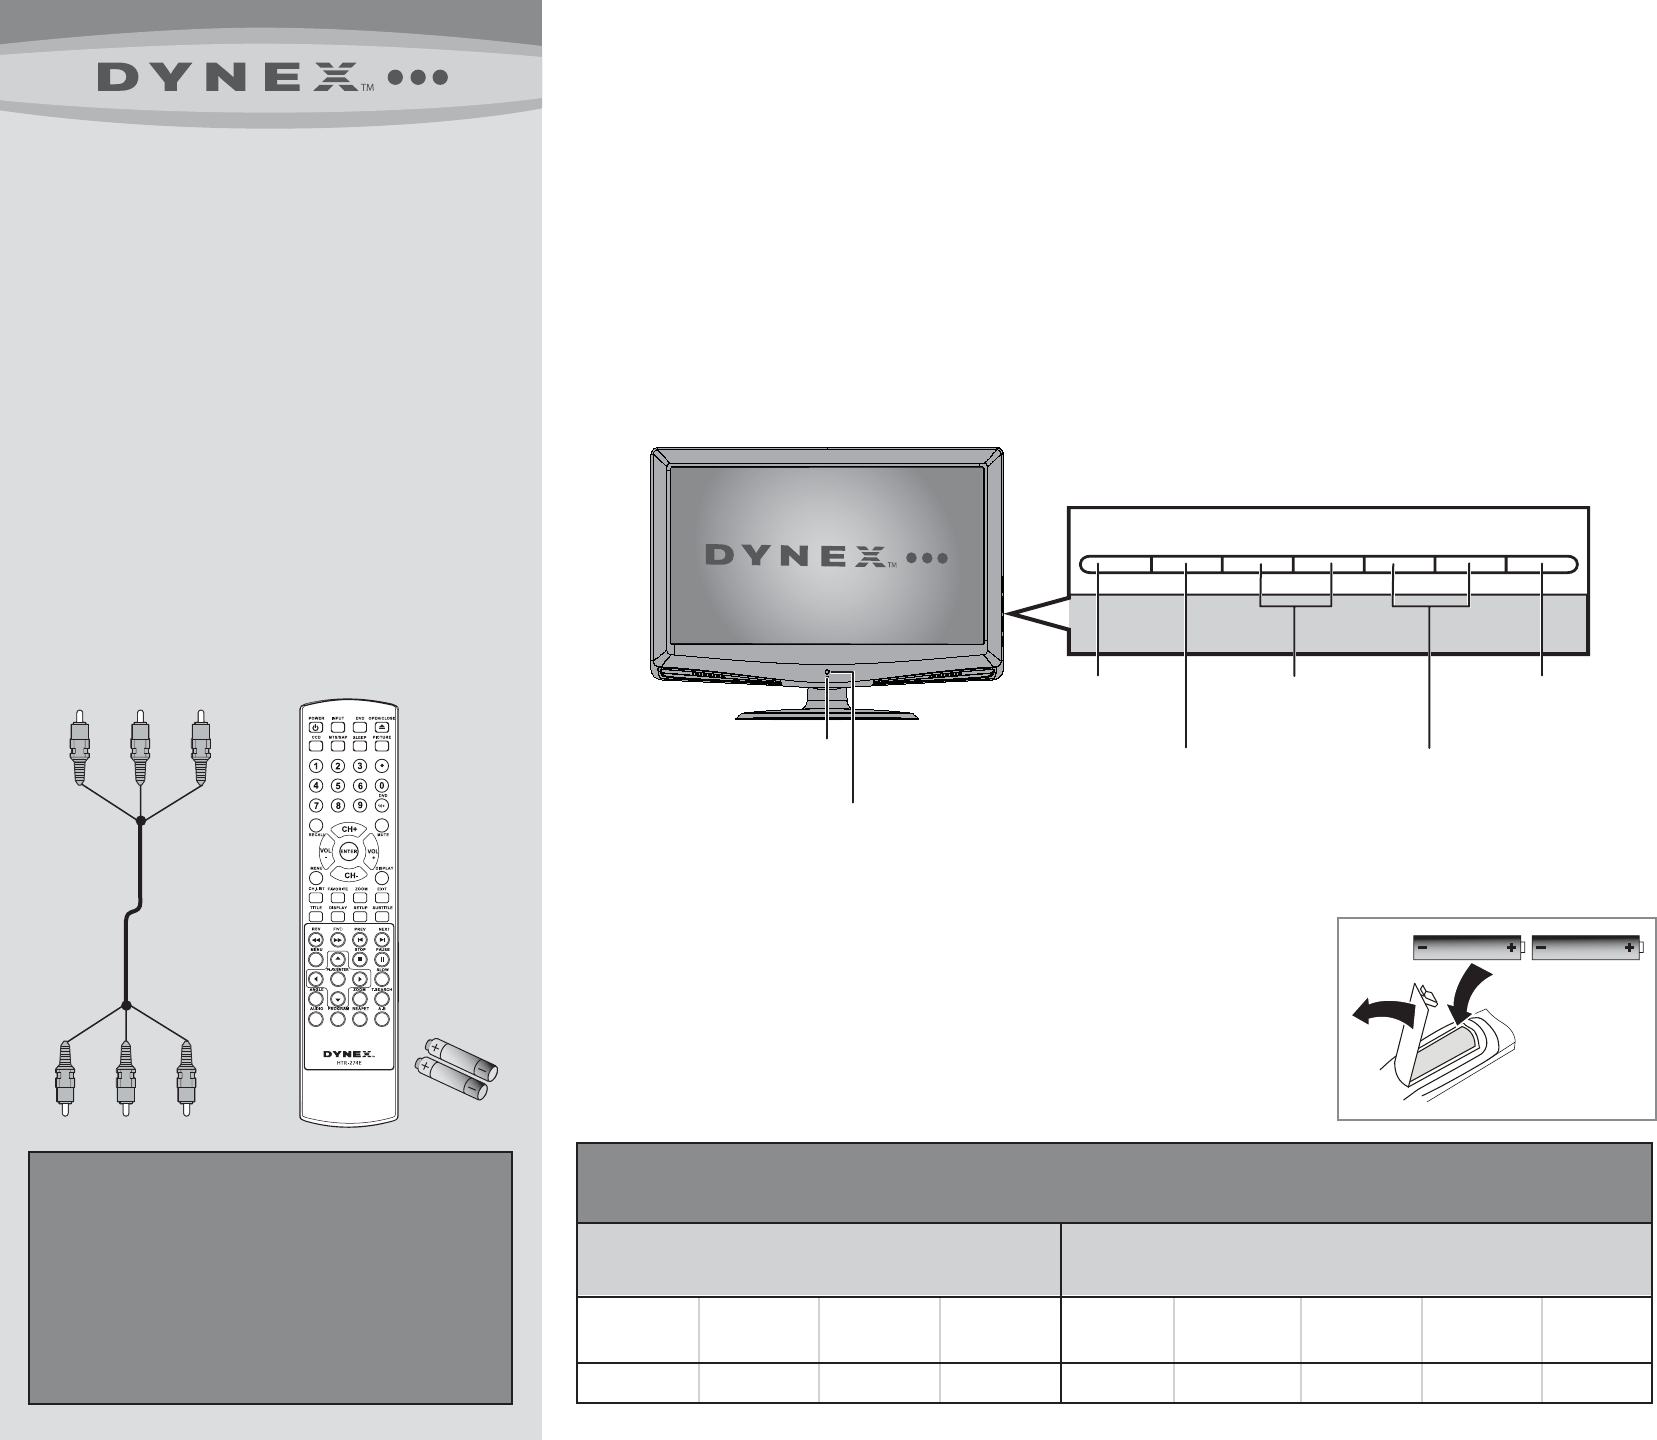 Dynex DX-LDVD22-10A Flat Panel Television User Manual